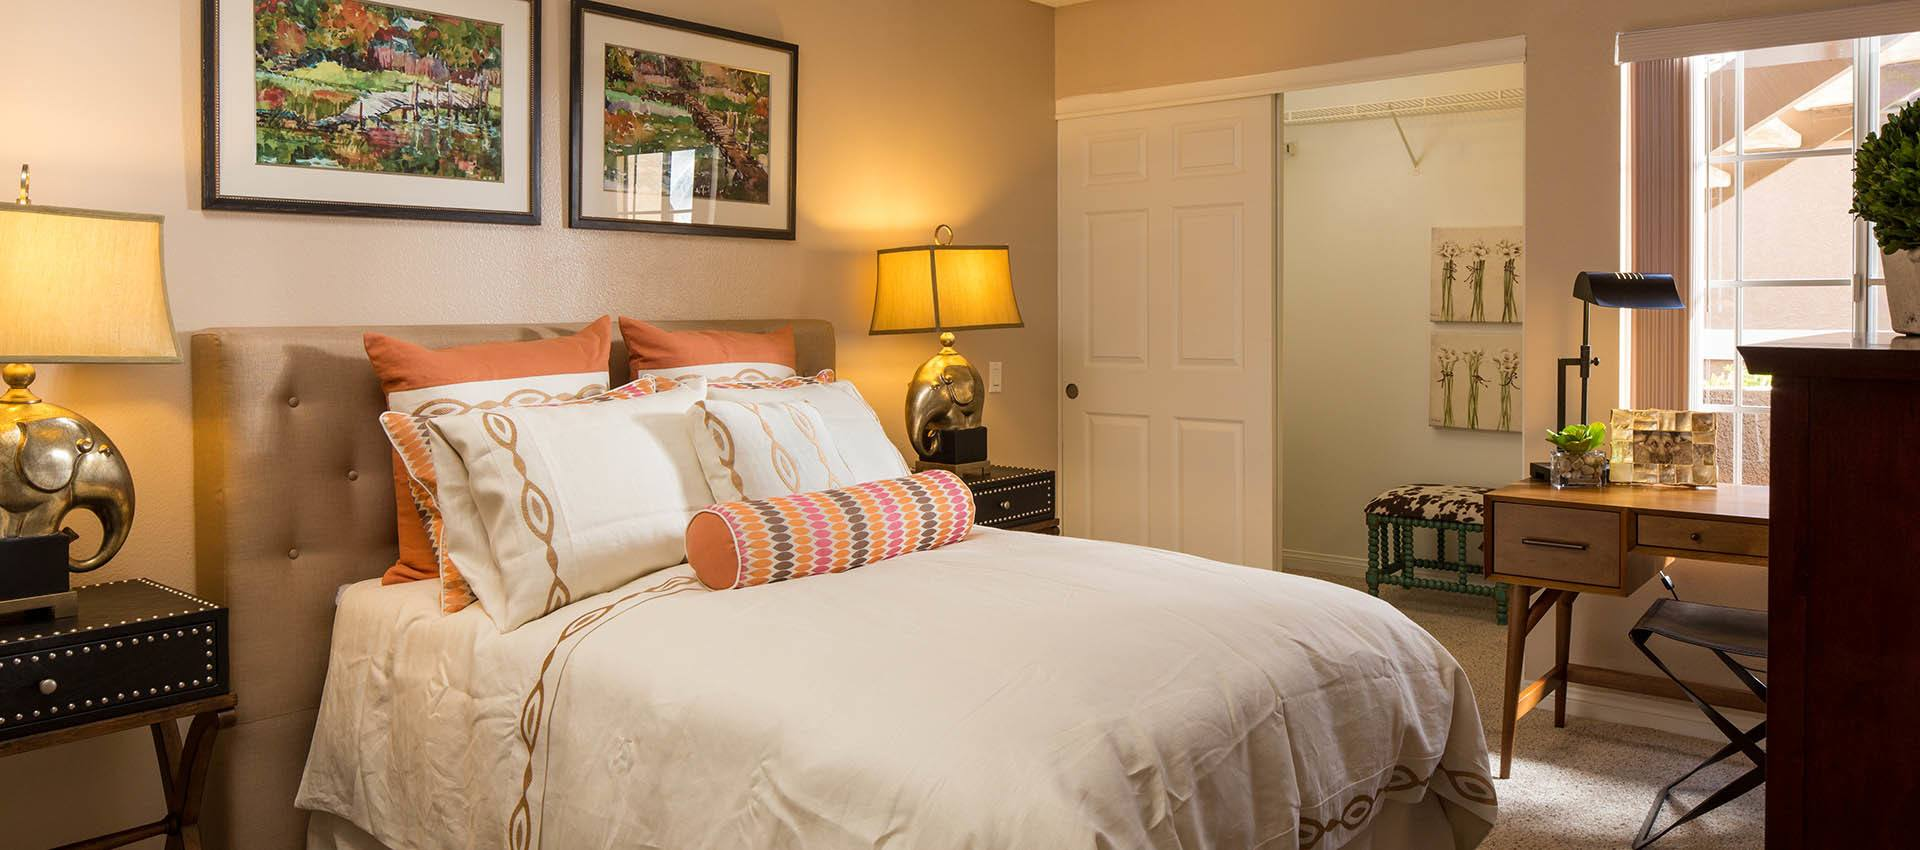 Nicely Decorated Master Bedroom at Paloma Summit Condominium Rentals in Foothill Ranch, CA